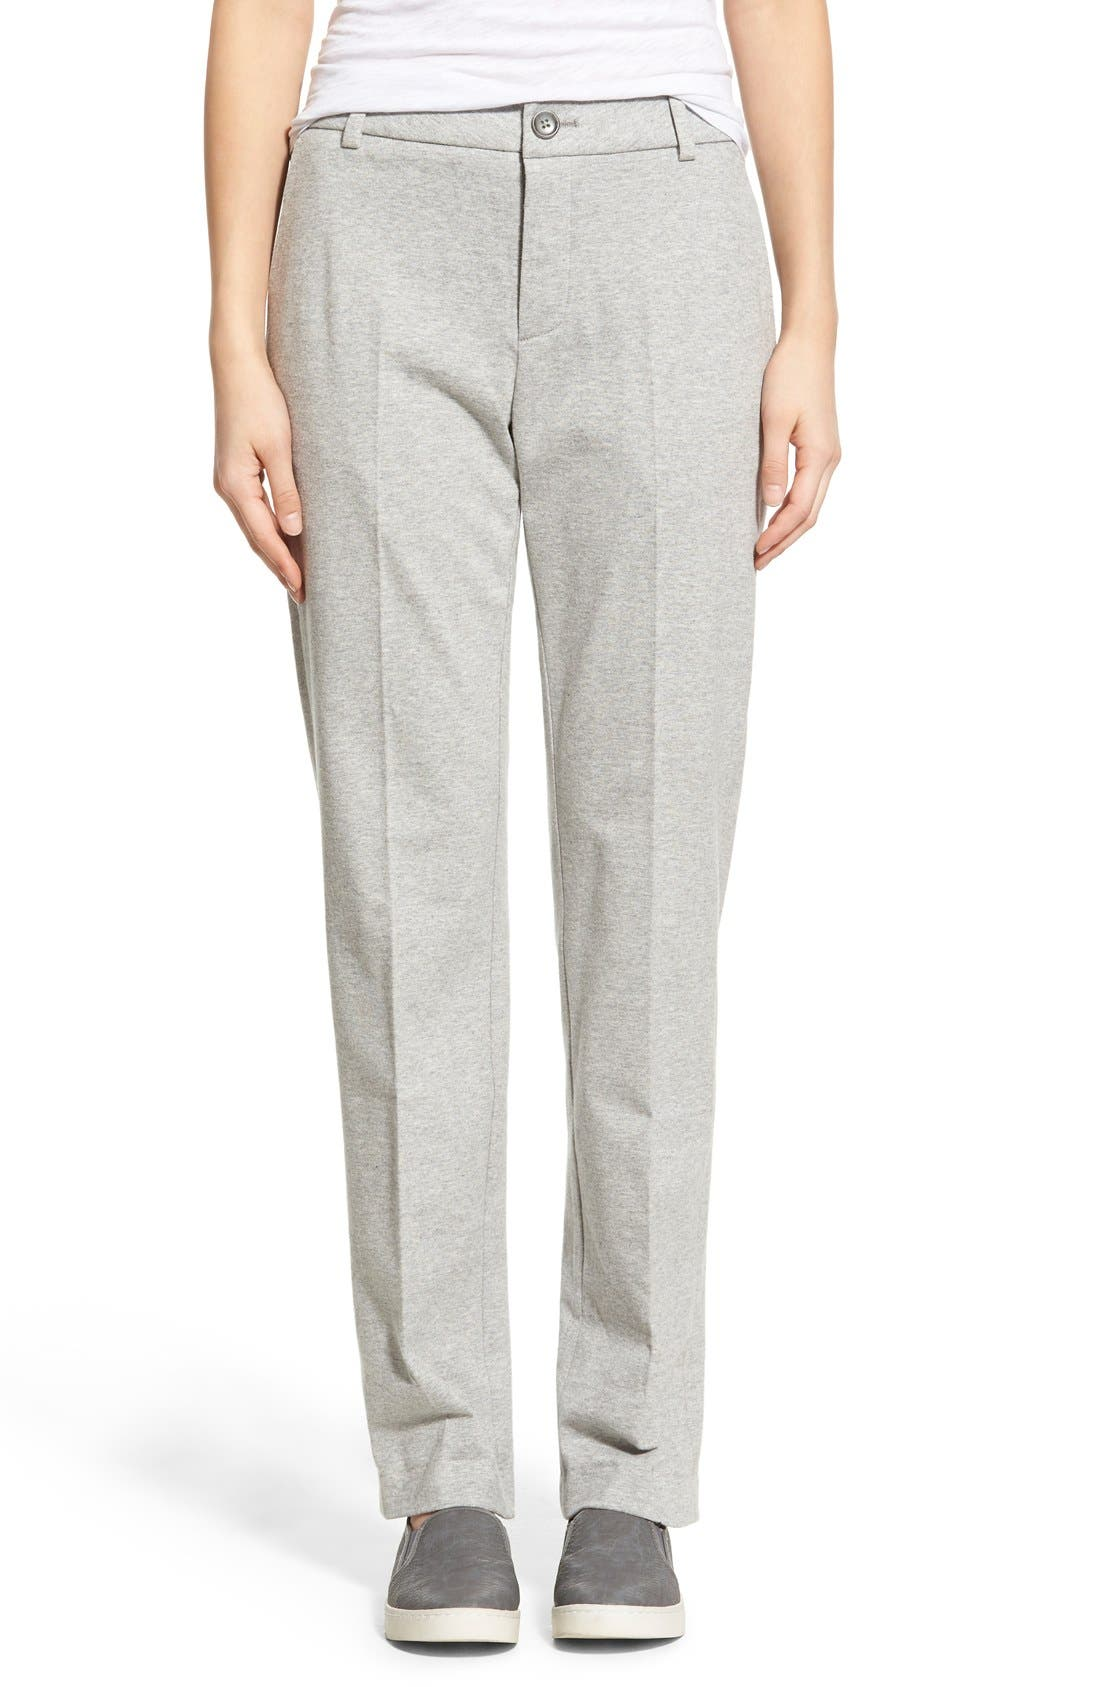 Alternate Image 1 Selected - James Perse Cotton Jersey Trousers